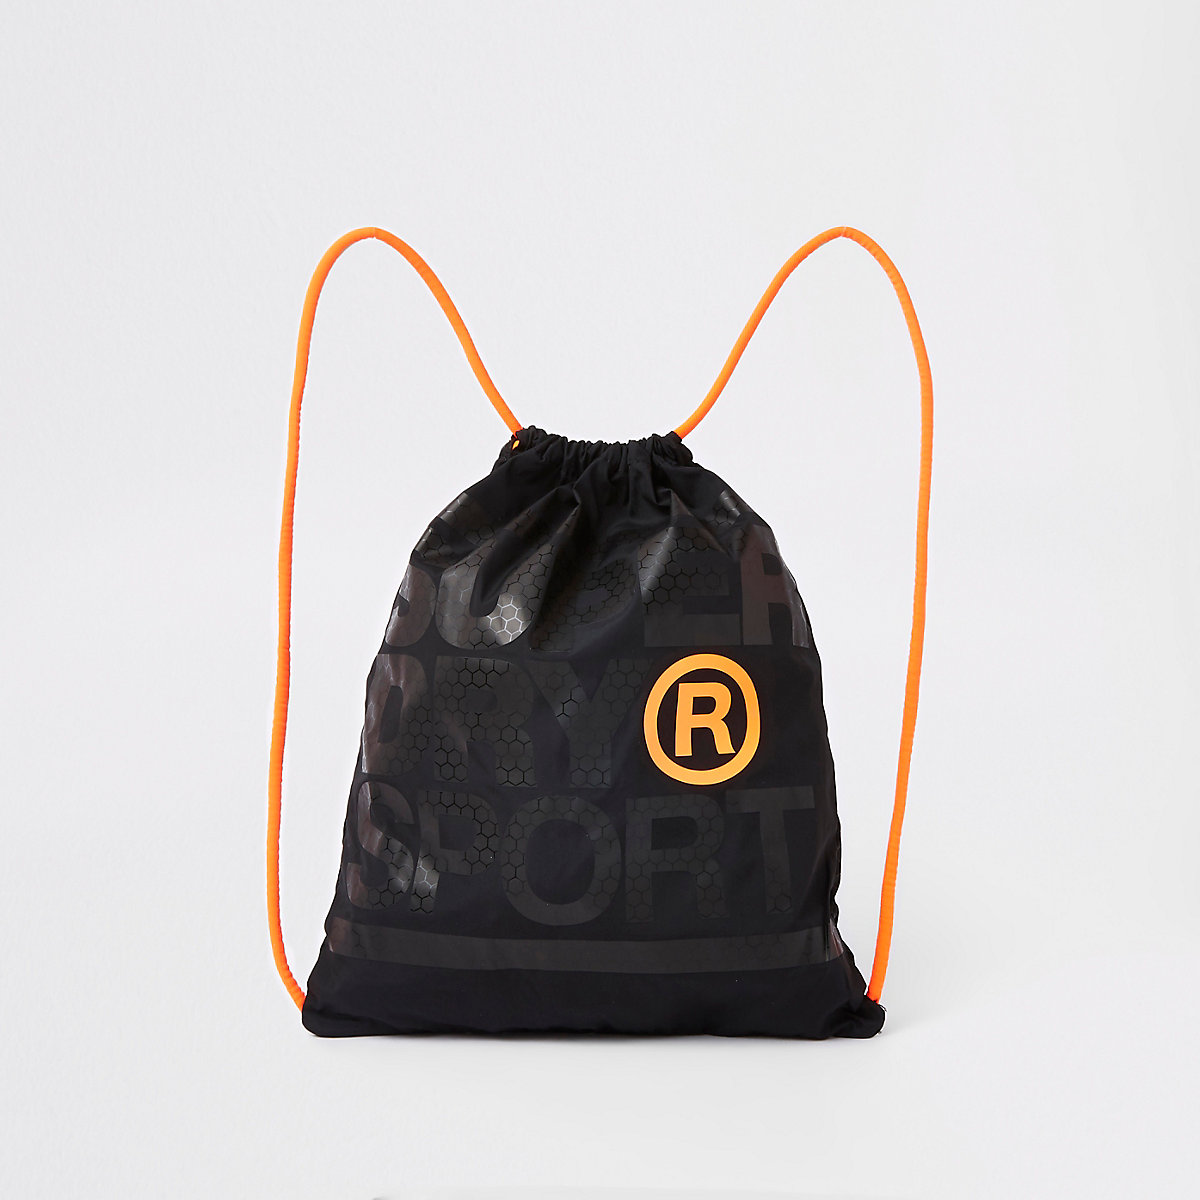 Superdry black logo print drawstring bag